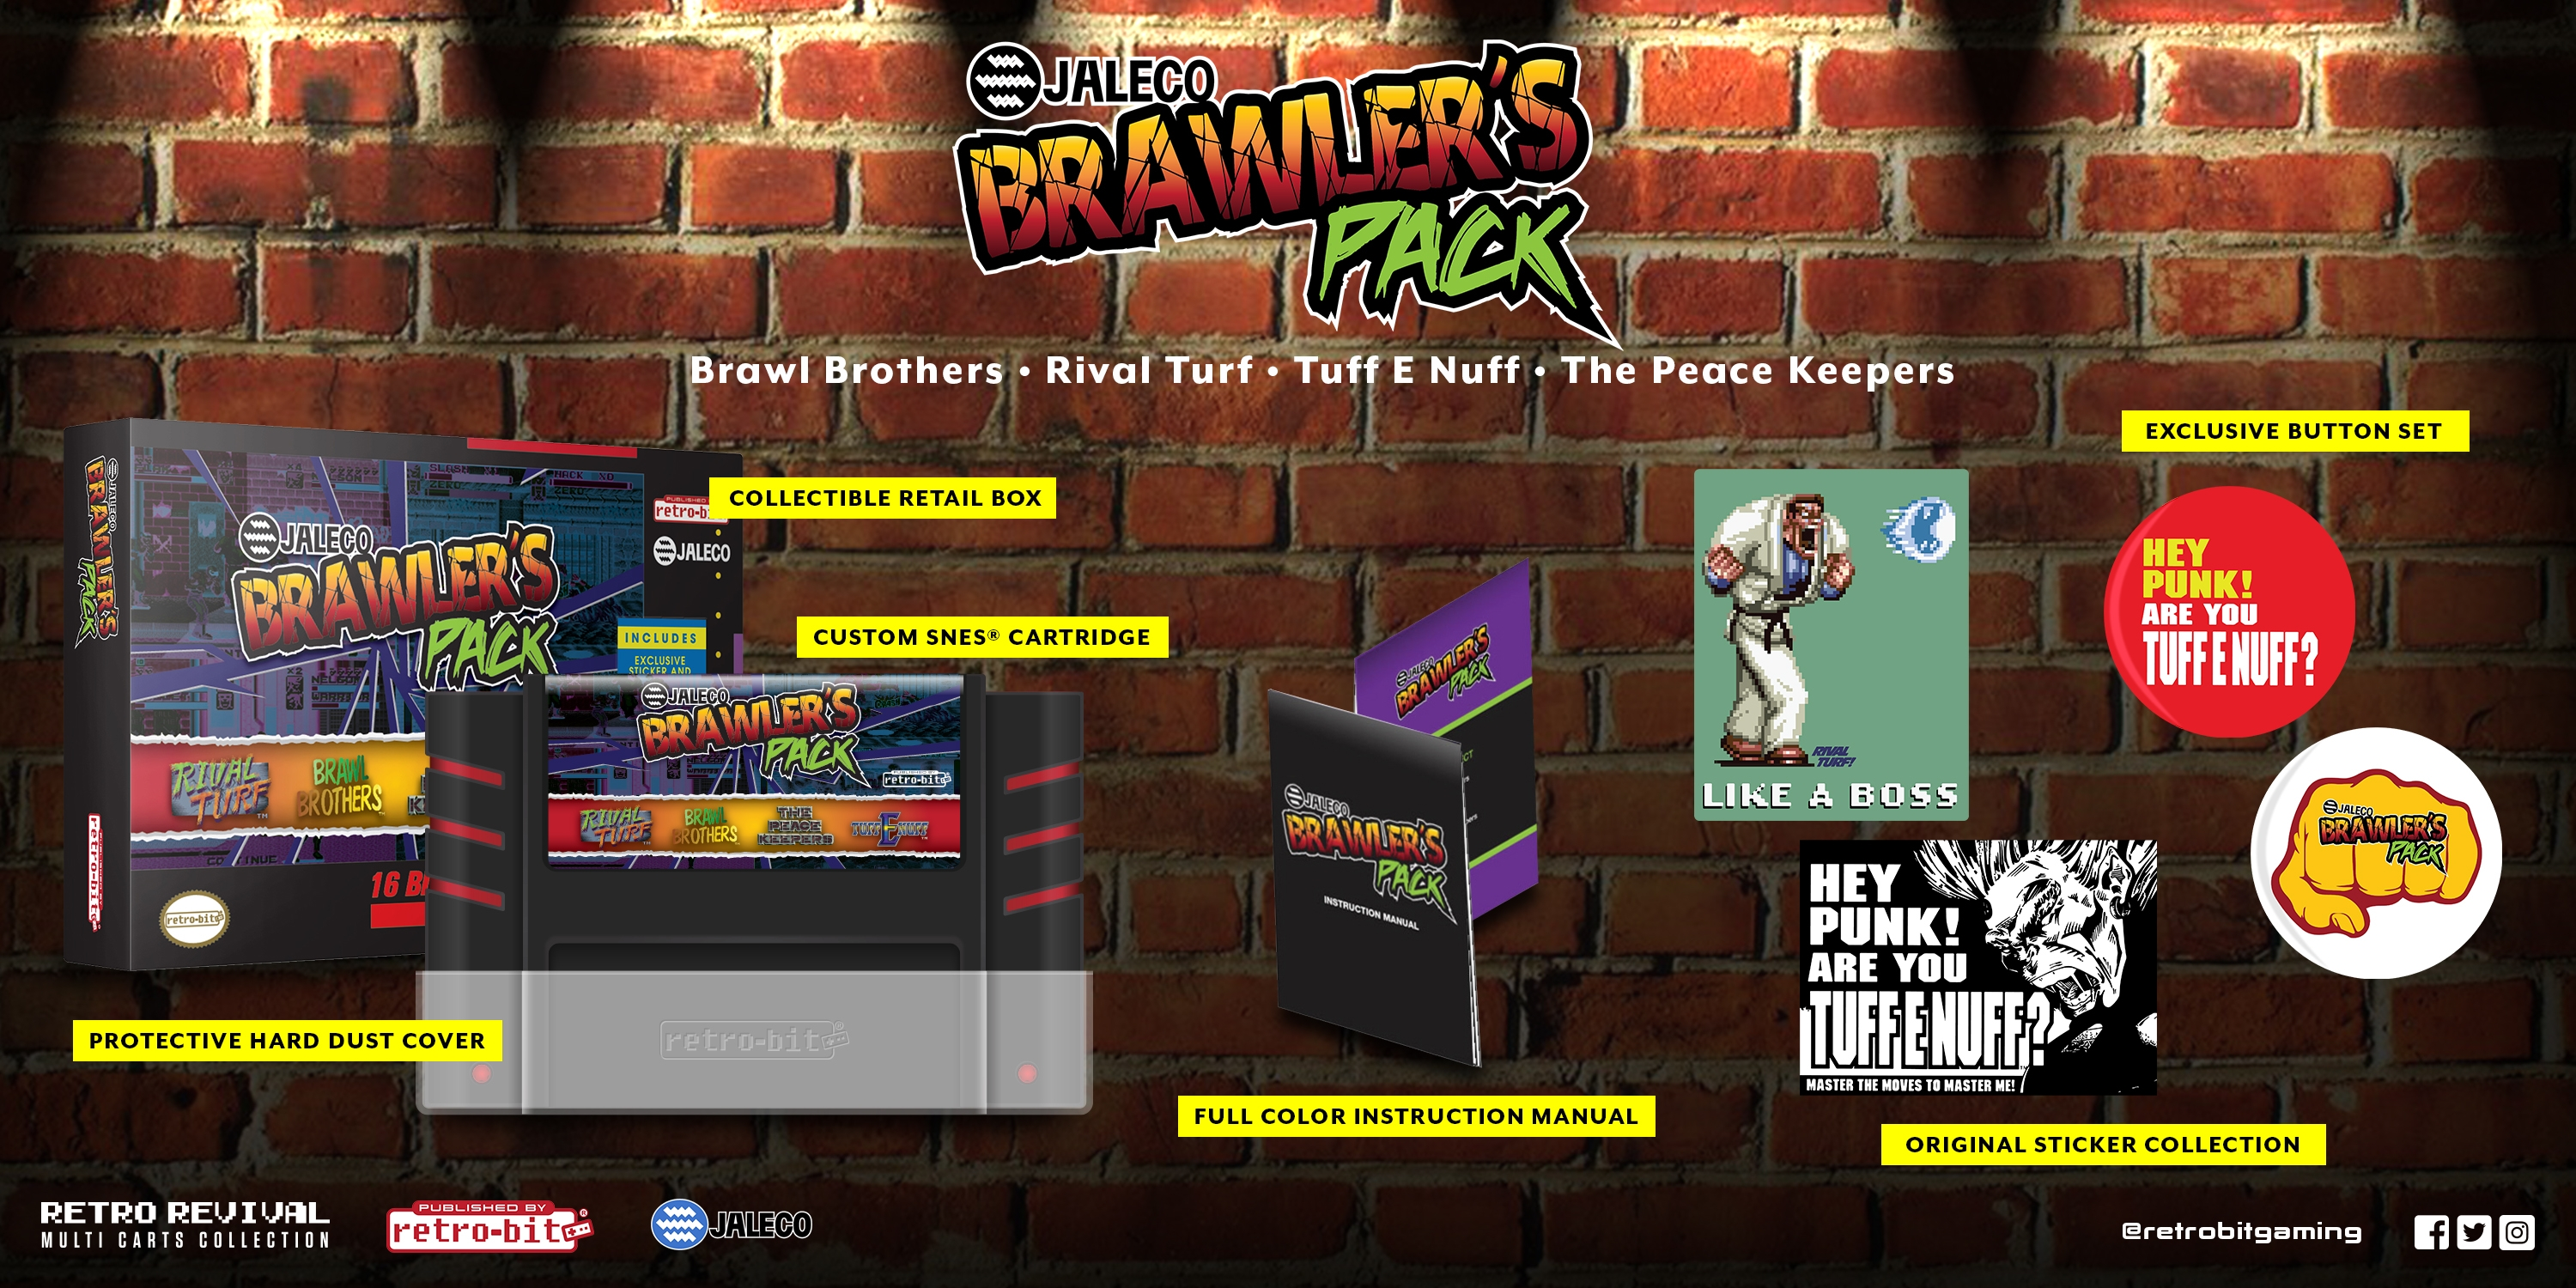 Jaleco Brawlers Pack